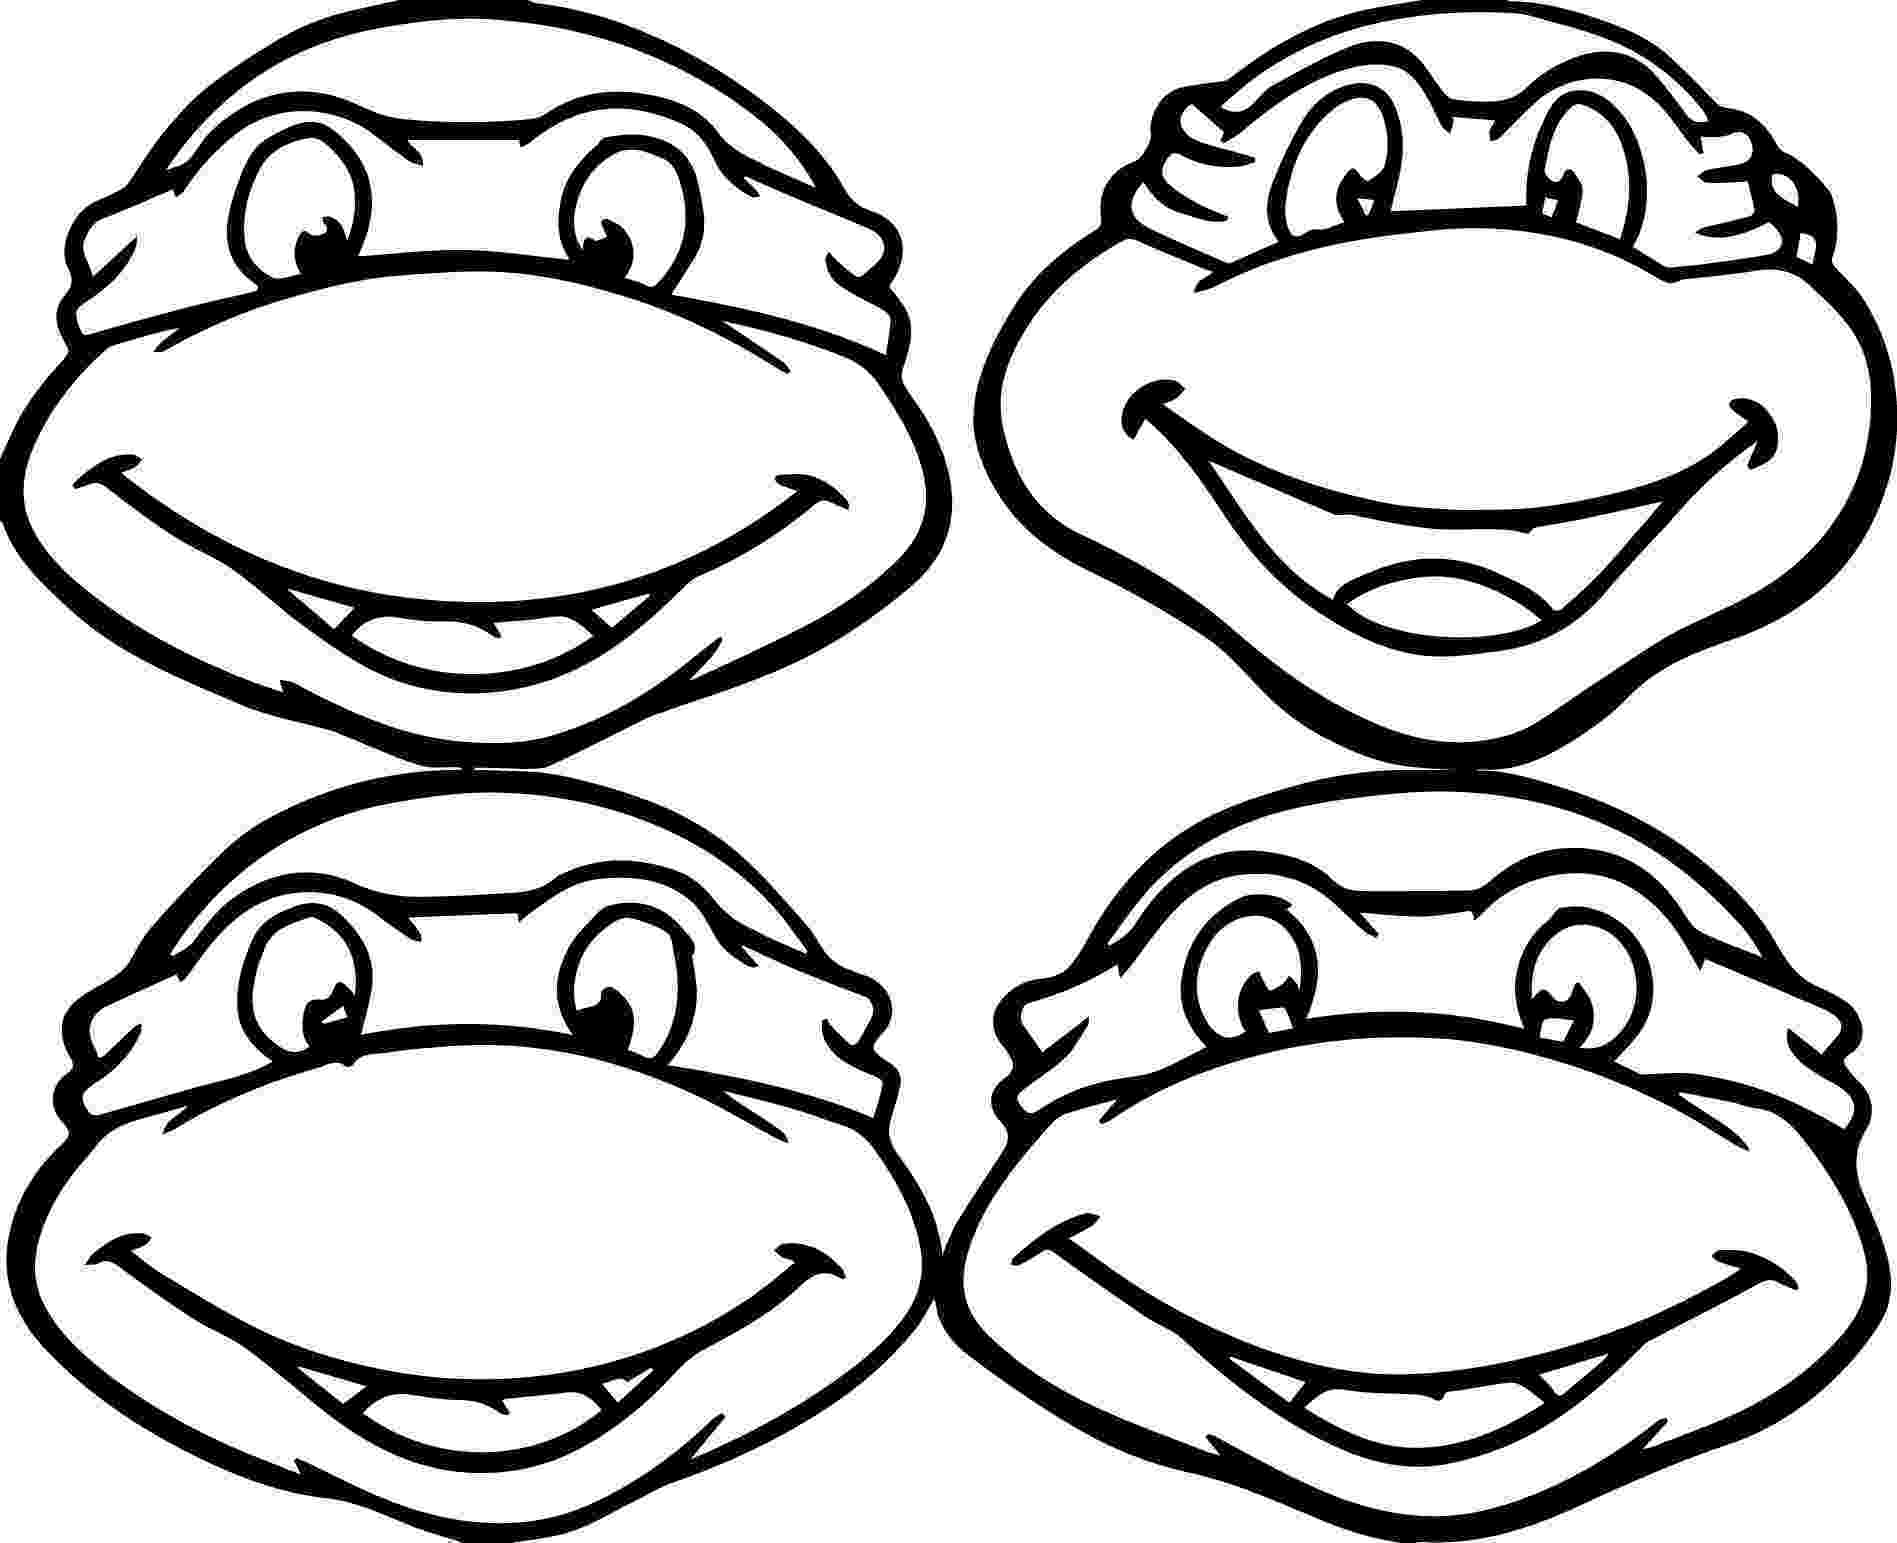 coloring pictures of turtles turtles to download turtles kids coloring pages turtles coloring of pictures